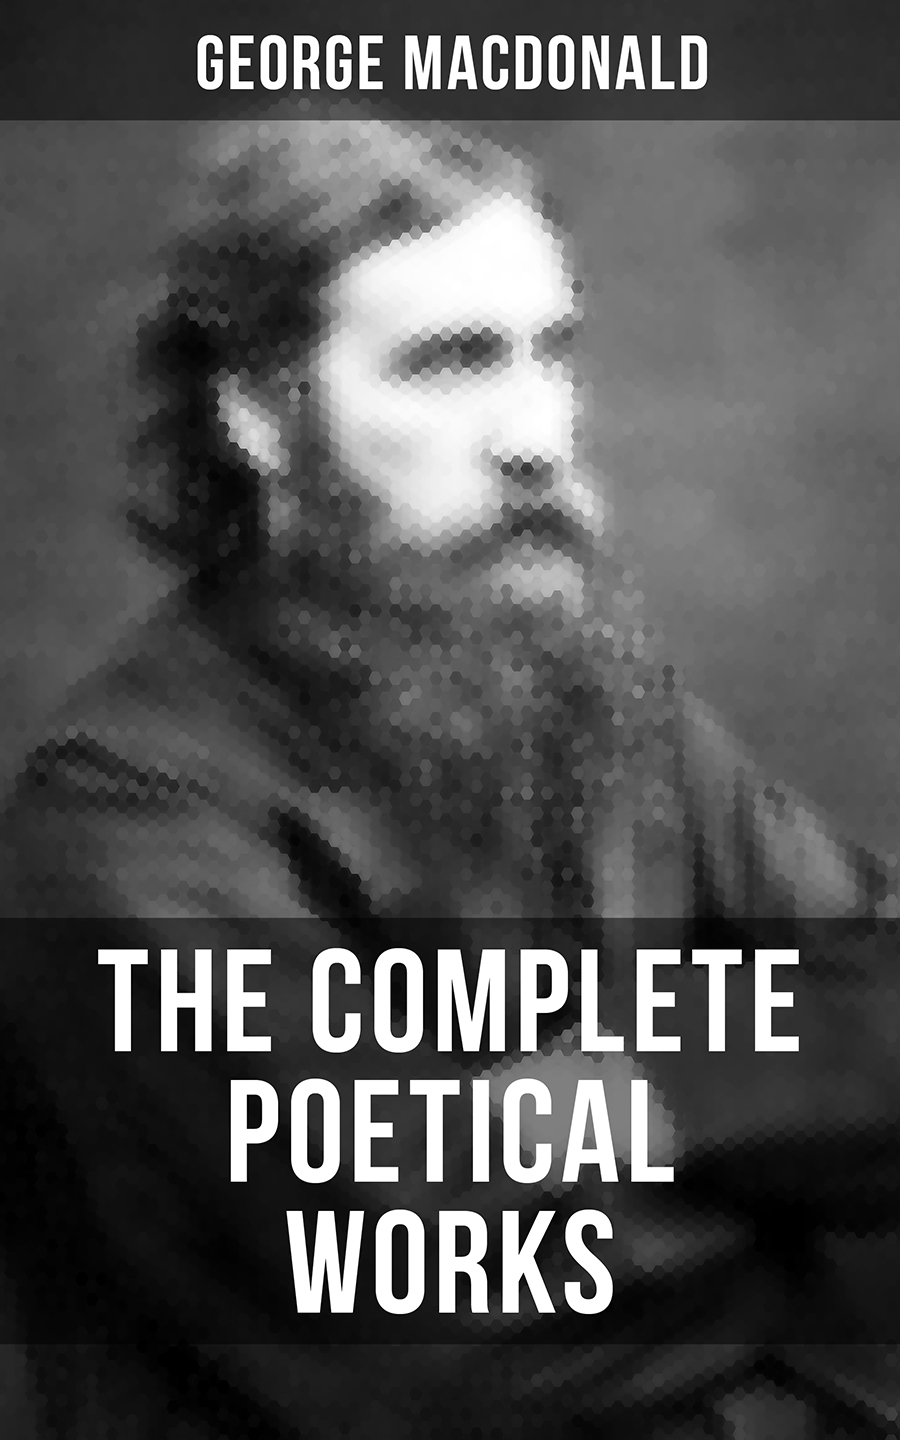 George MacDonald The Complete Poetical Works of George MacDonald george bull the works of george bull d d lord bishop of st david s 2